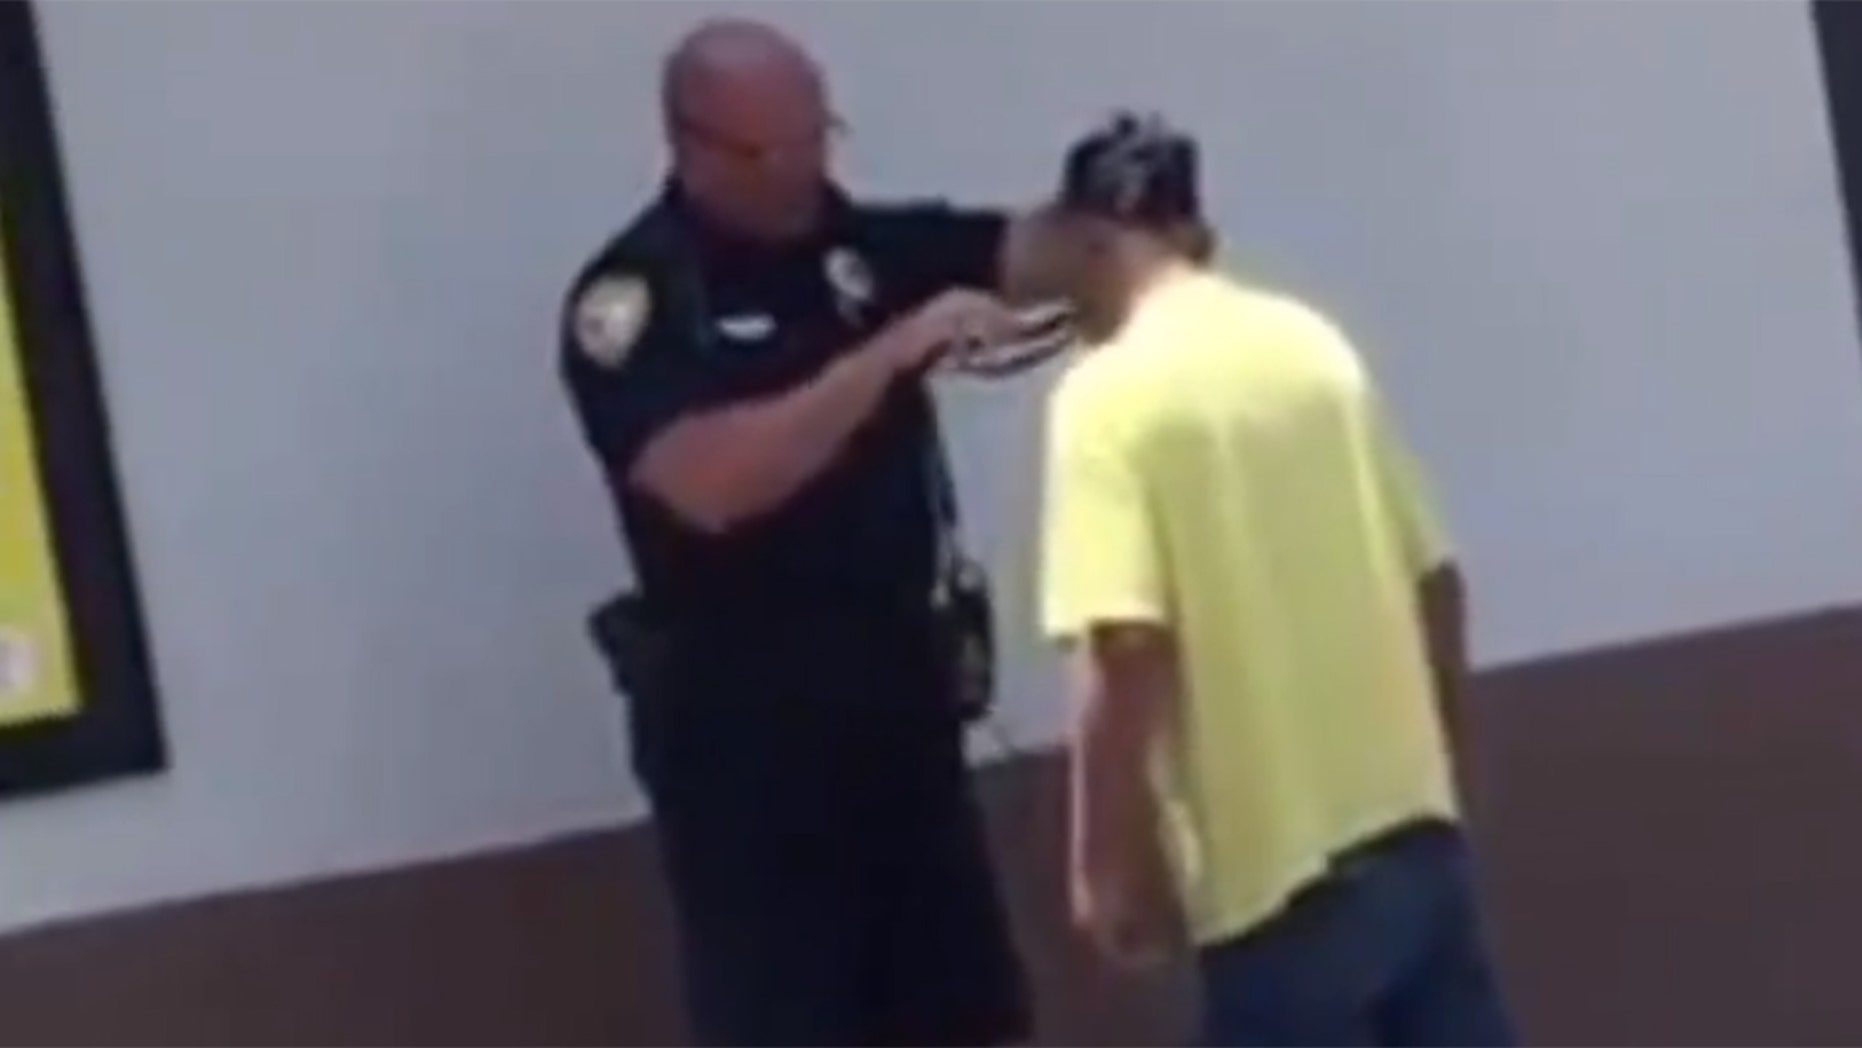 A Florida police officer went viral after being recorded helping a homeless man shave for a job interview at McDonald's.